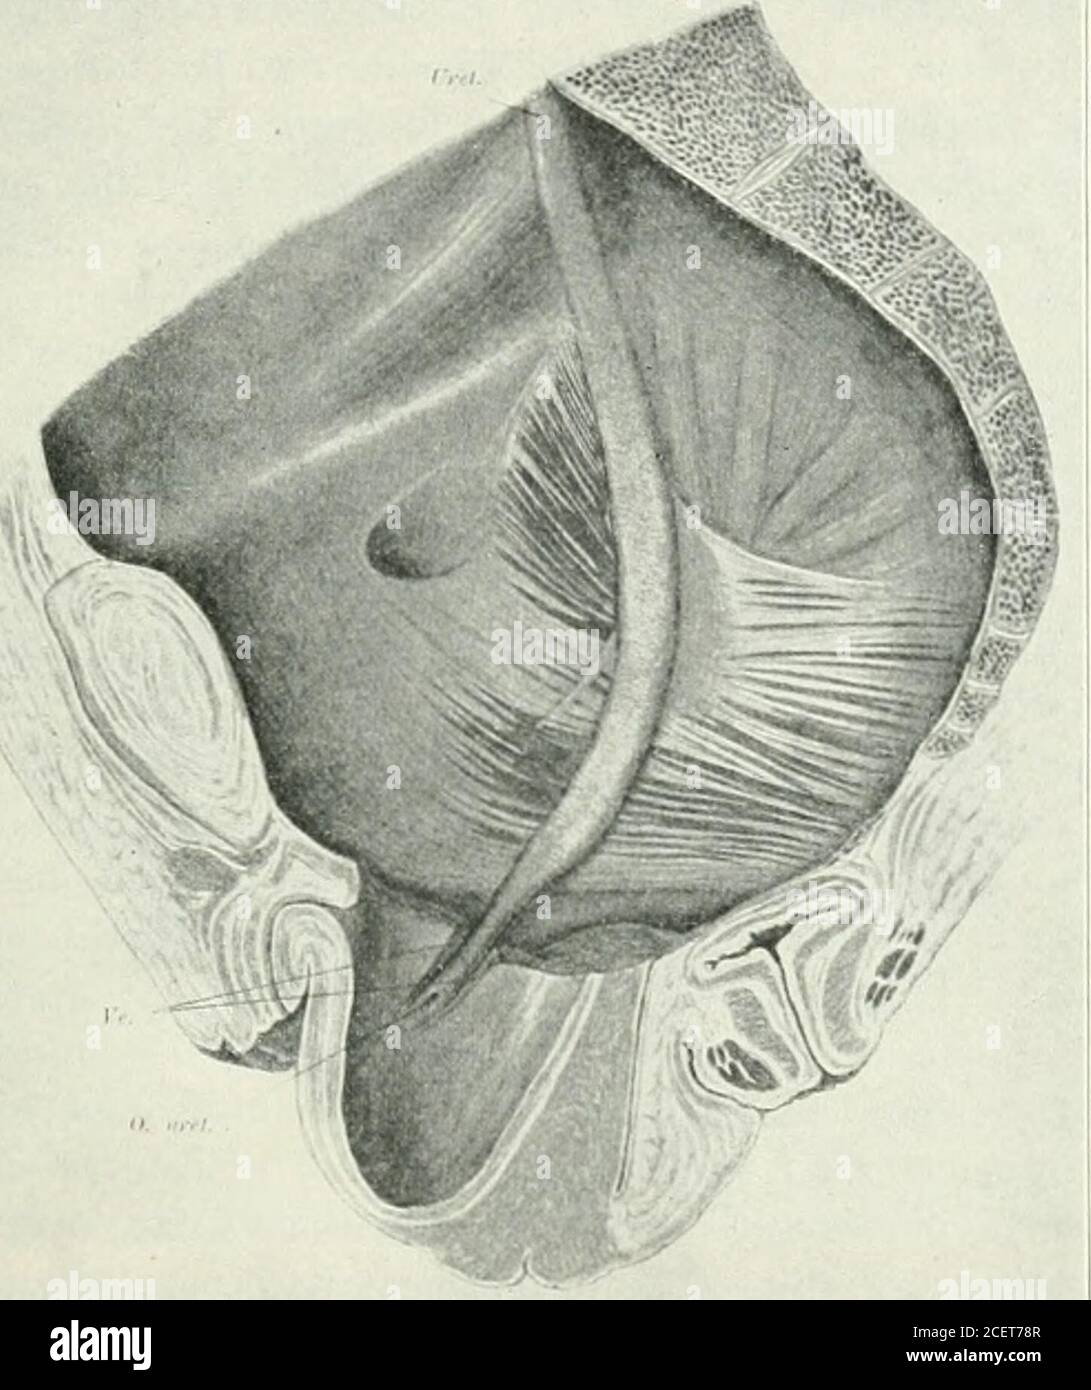 . American journal of obstetrics and gynecology. ilatation.Undoubtedly many gynecologists have noticed dilated ureters in casesof procidentia. There has, hitherto, been no general recognition of thefact that the uterine prolapse may bear an etiologic relationship tothe ureter dilatation. The only reference to this fact that has come •Rc.id at the Forty-eighth Annual Meeting of the American Gynecological Society,Hot Springs. a.. May 21-23, 1923. BRETTAUEK AND RUBIN: HYDROURETER AND HYDRONEPHROSIS 697 to our notice is to be found in the anatomic study of genital prolapseby Tandler and Halban. T Stock Photo